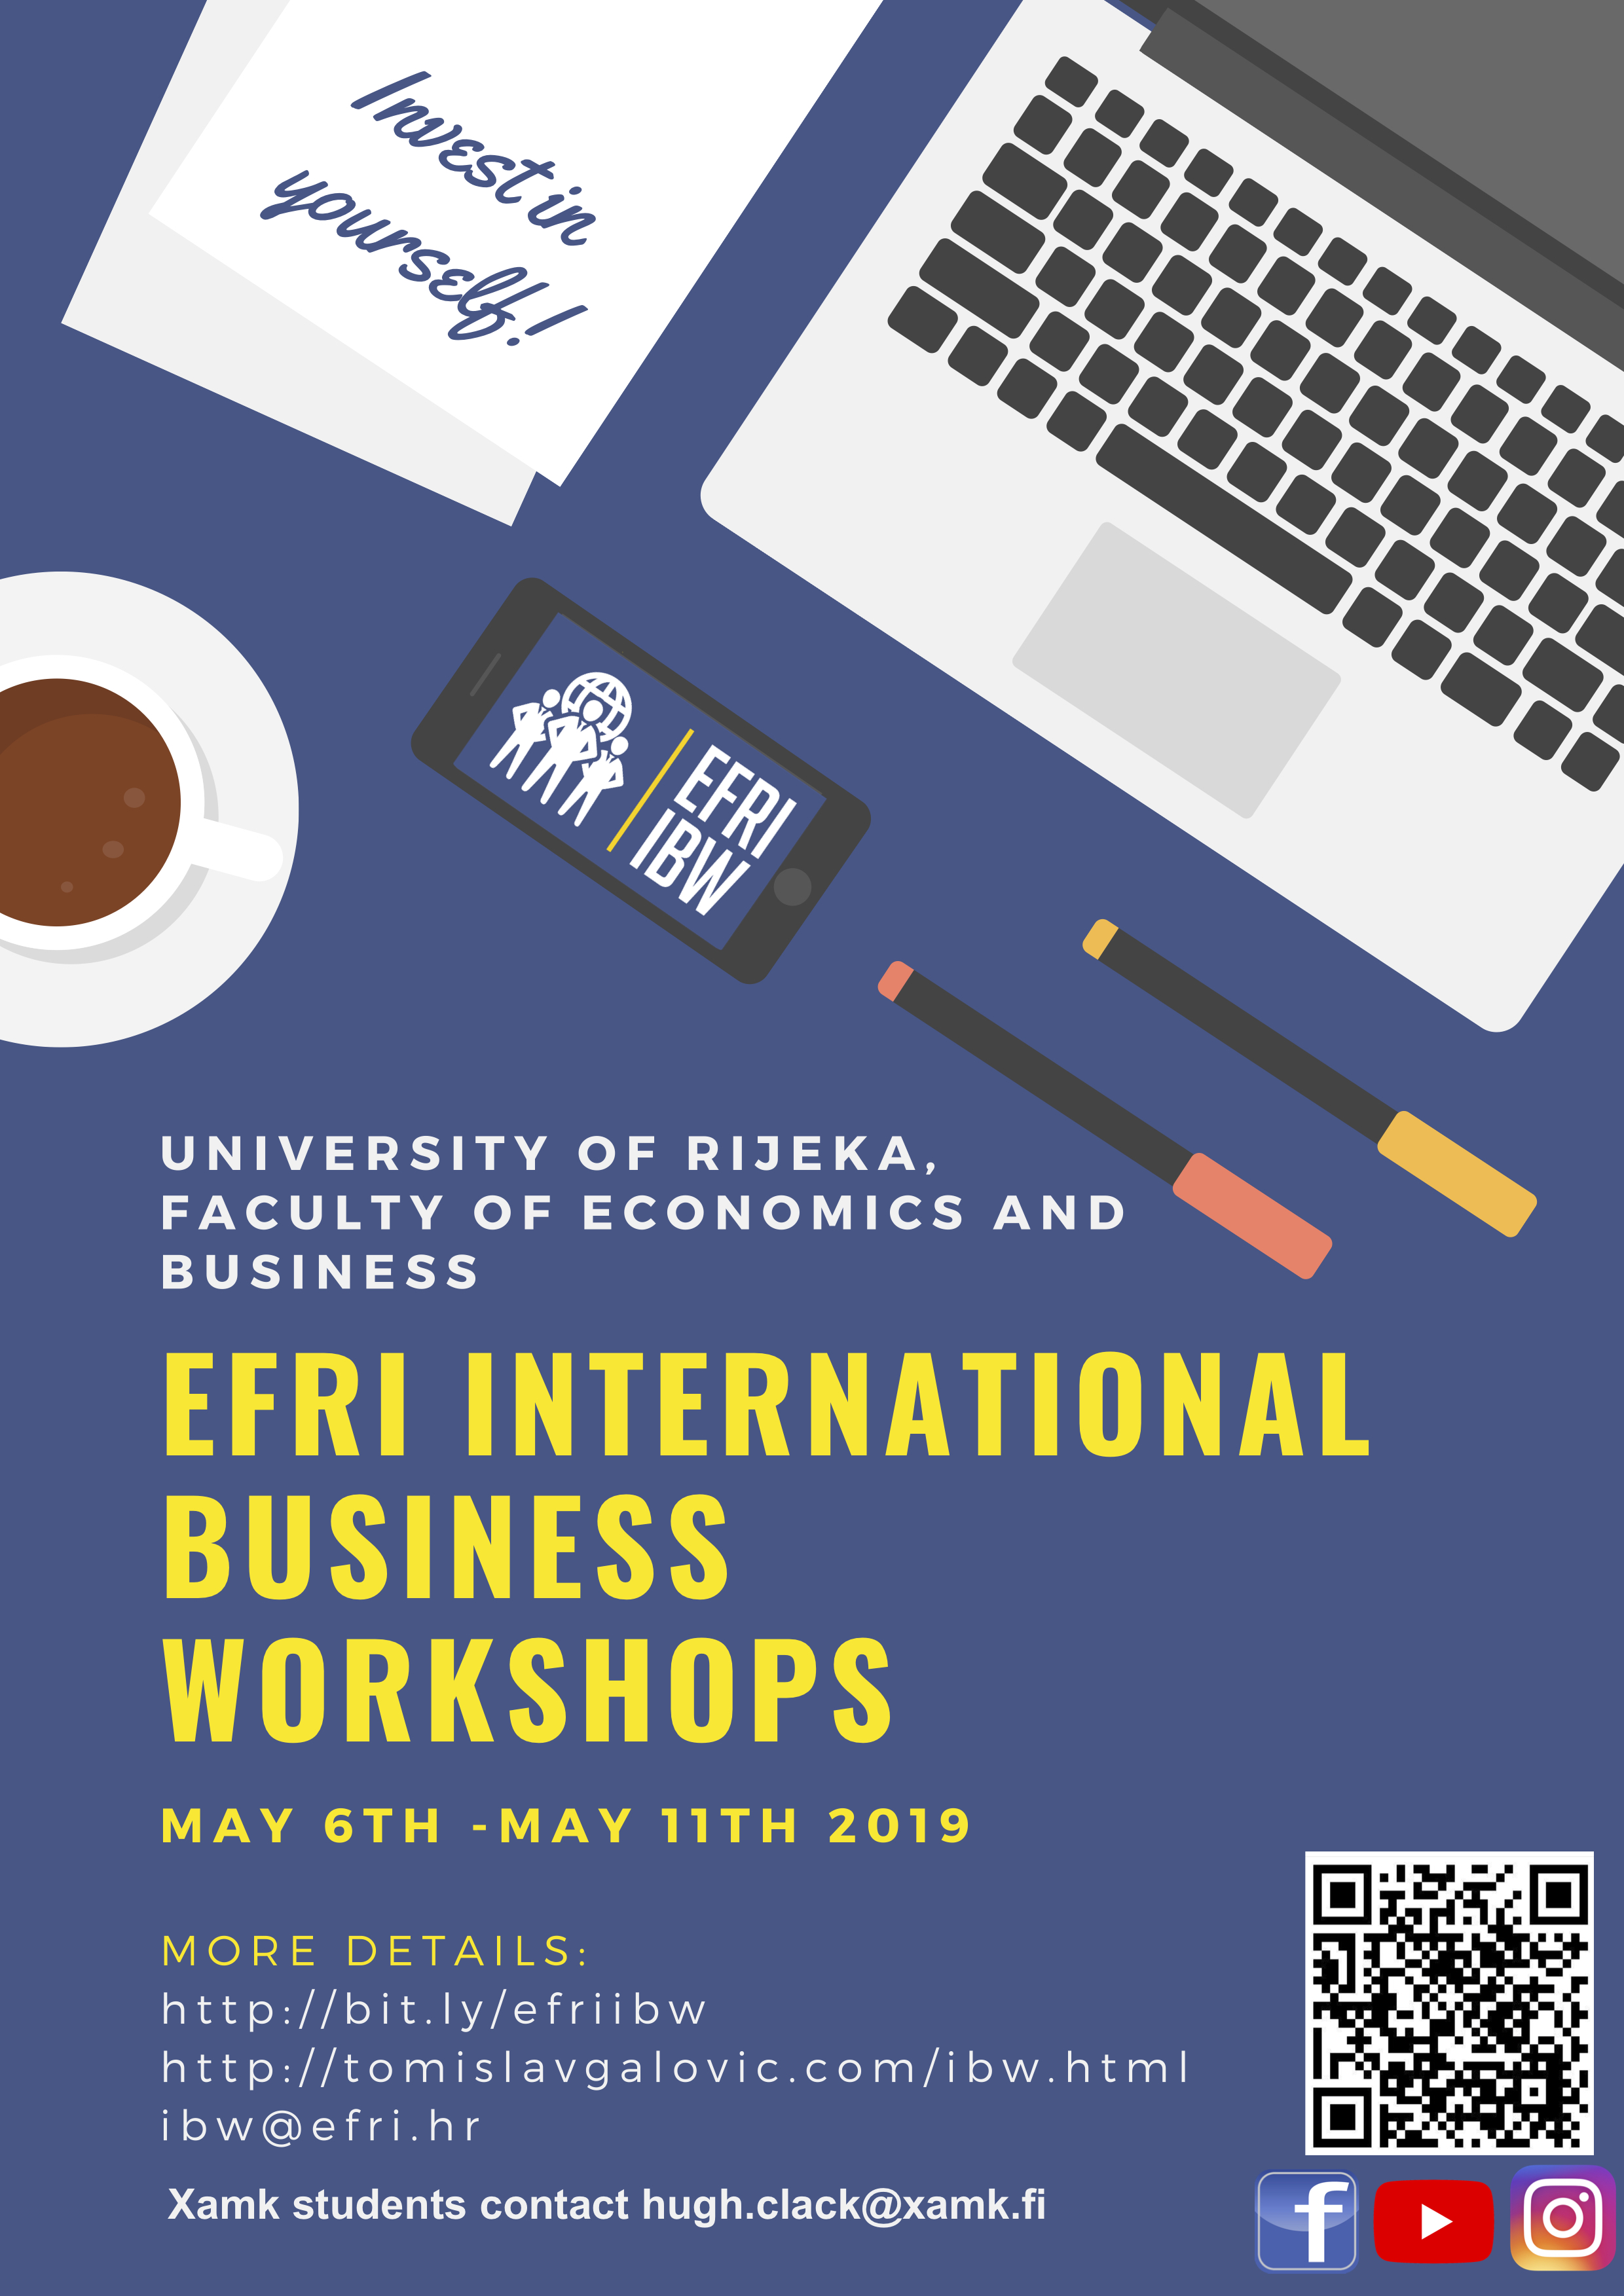 EFRI international business workshops